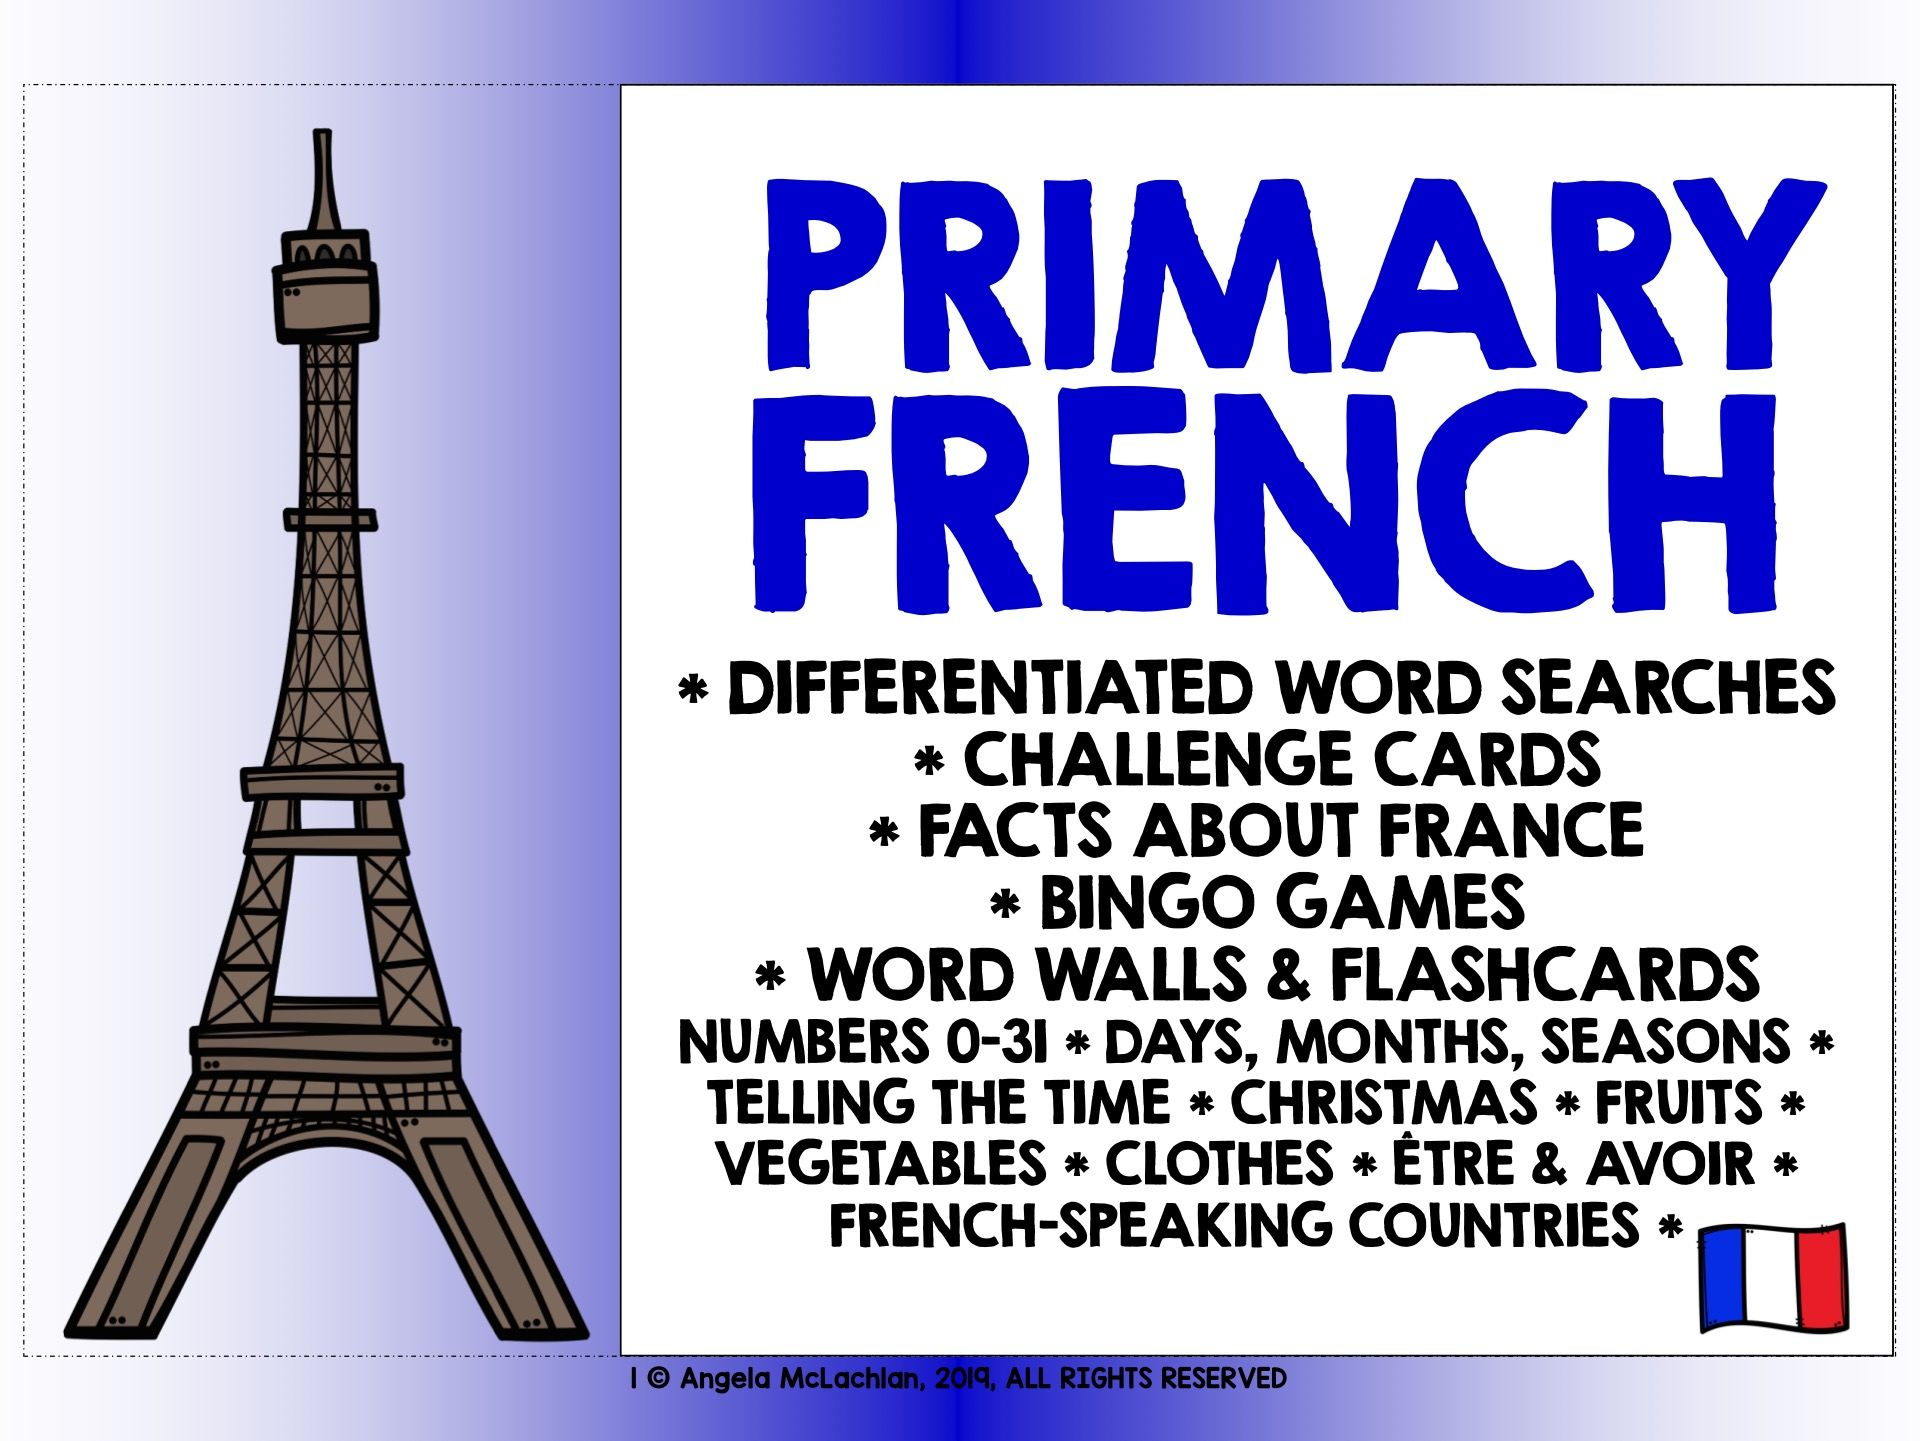 PRIMARY FRENCH #1